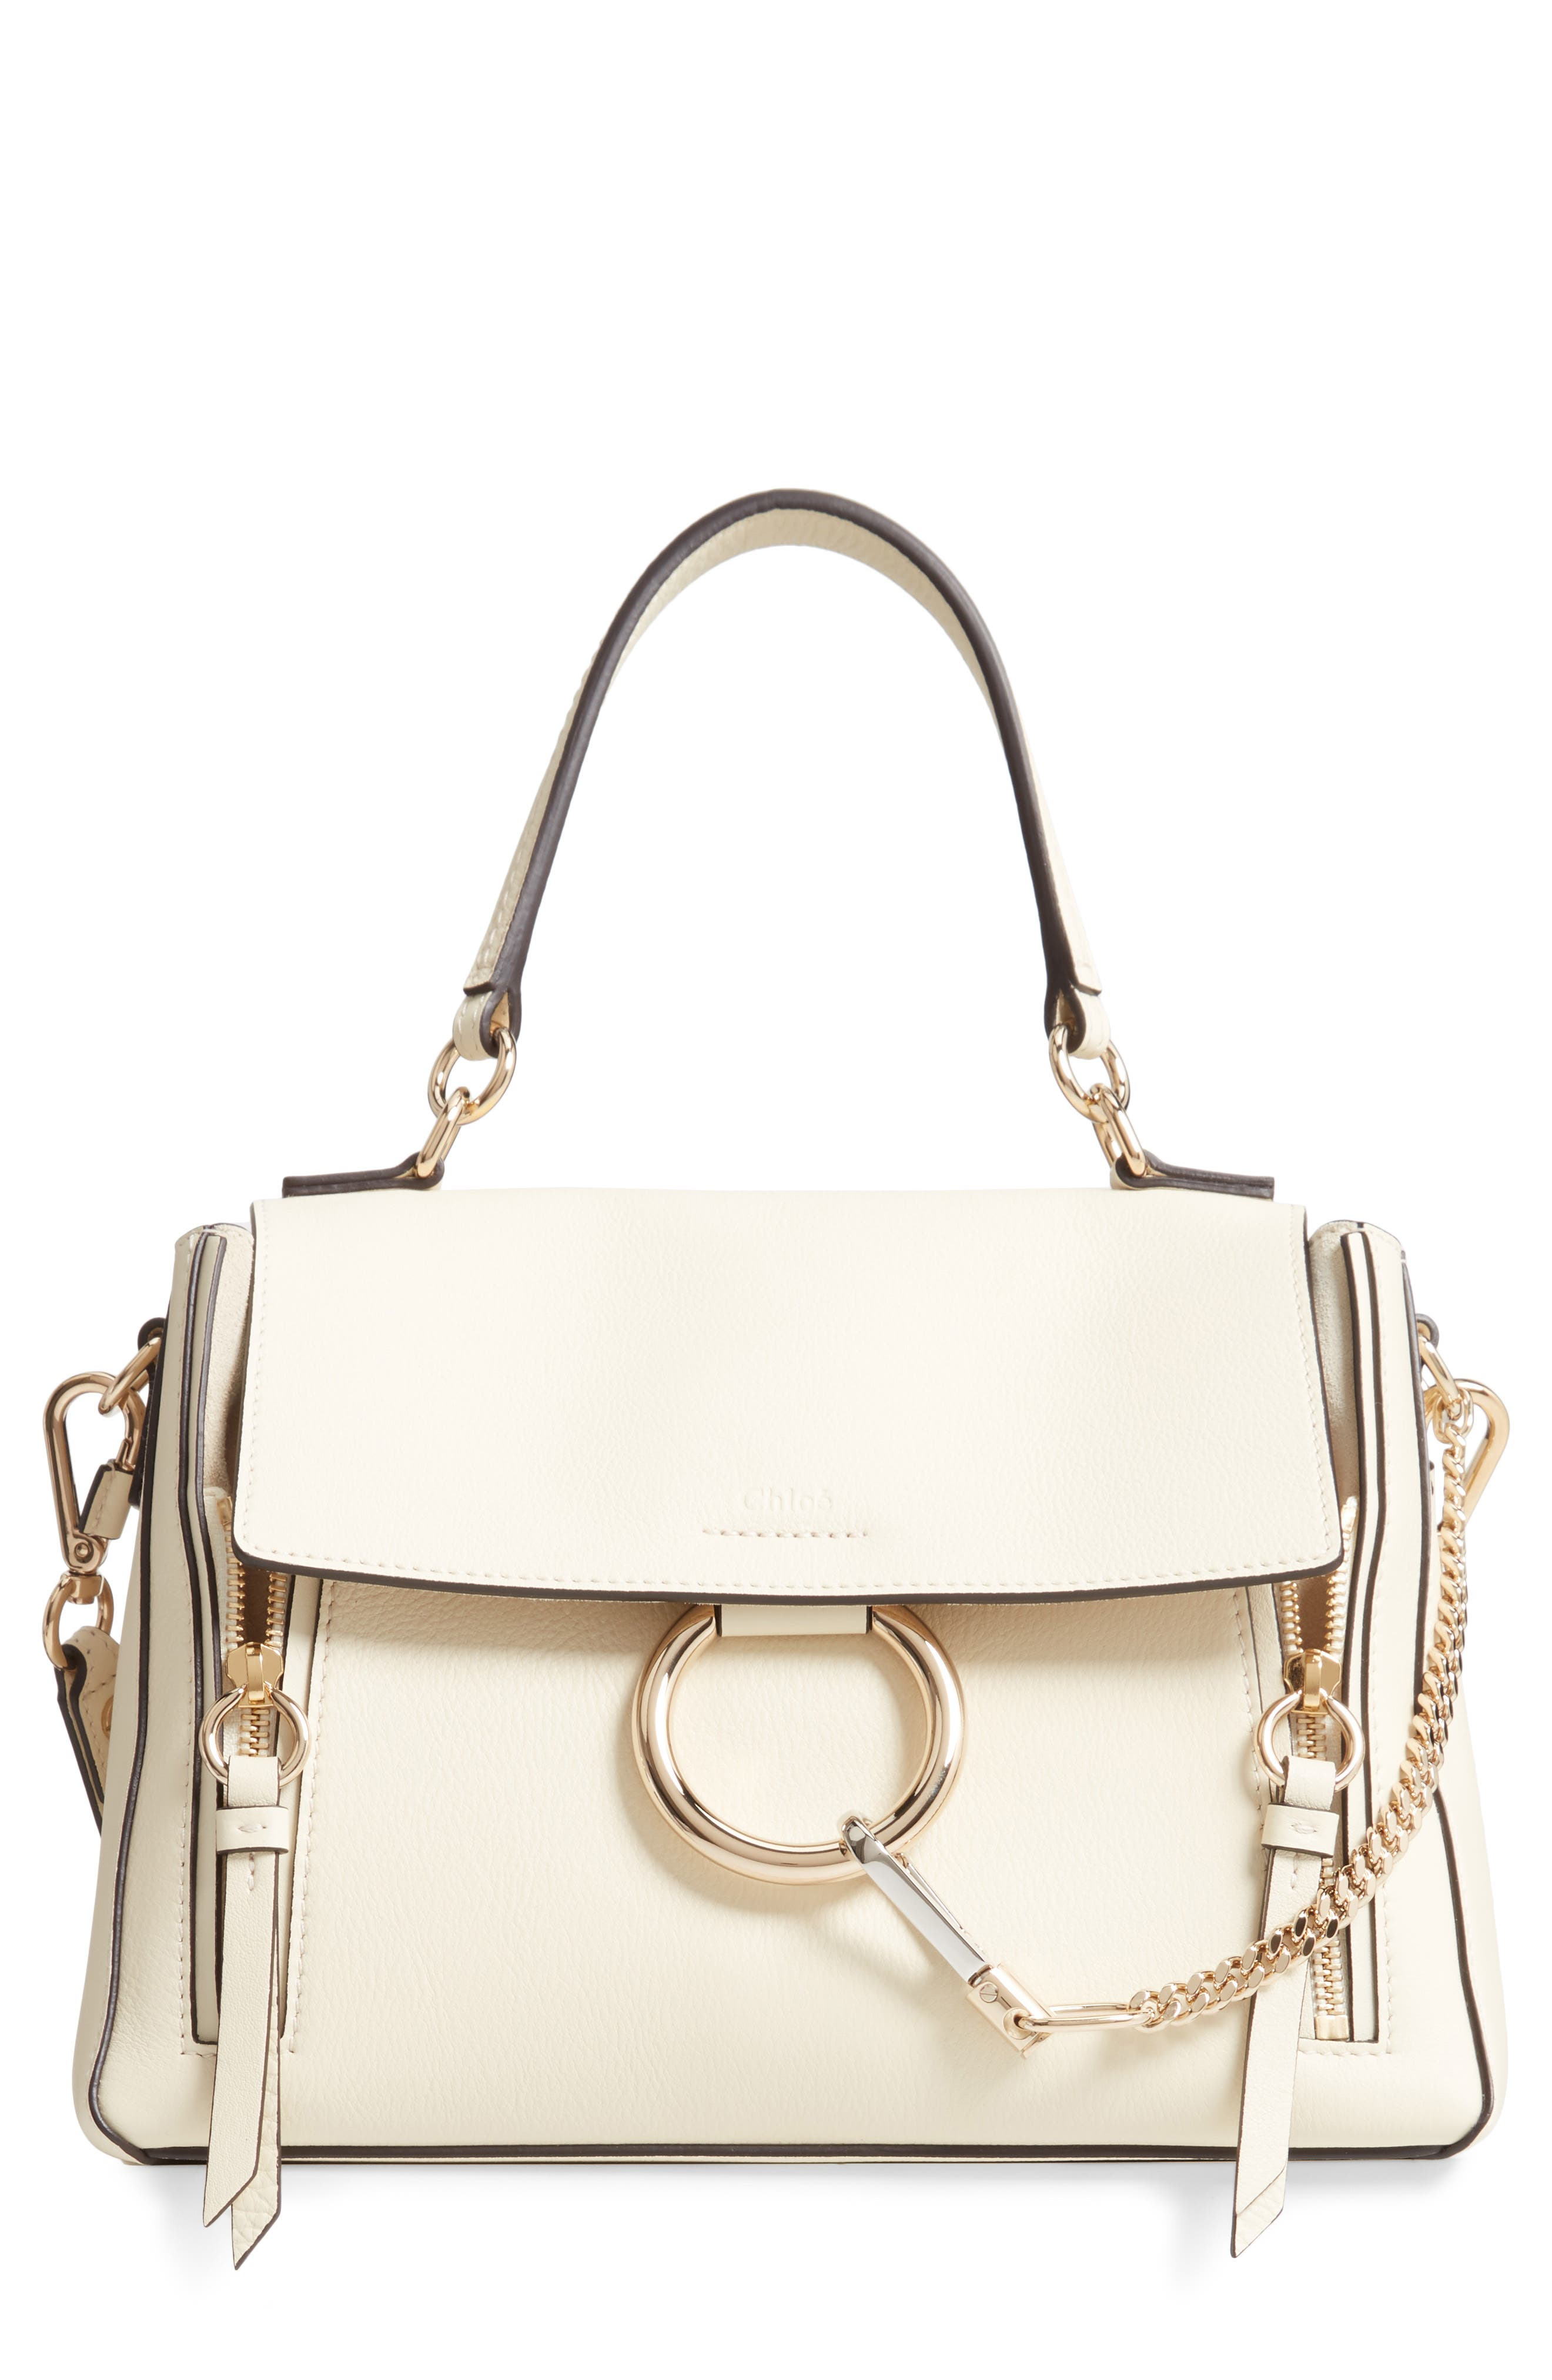 CHLOÉ, Small Faye Day Leather Shoulder Bag, Main thumbnail 1, color, OFF WHITE